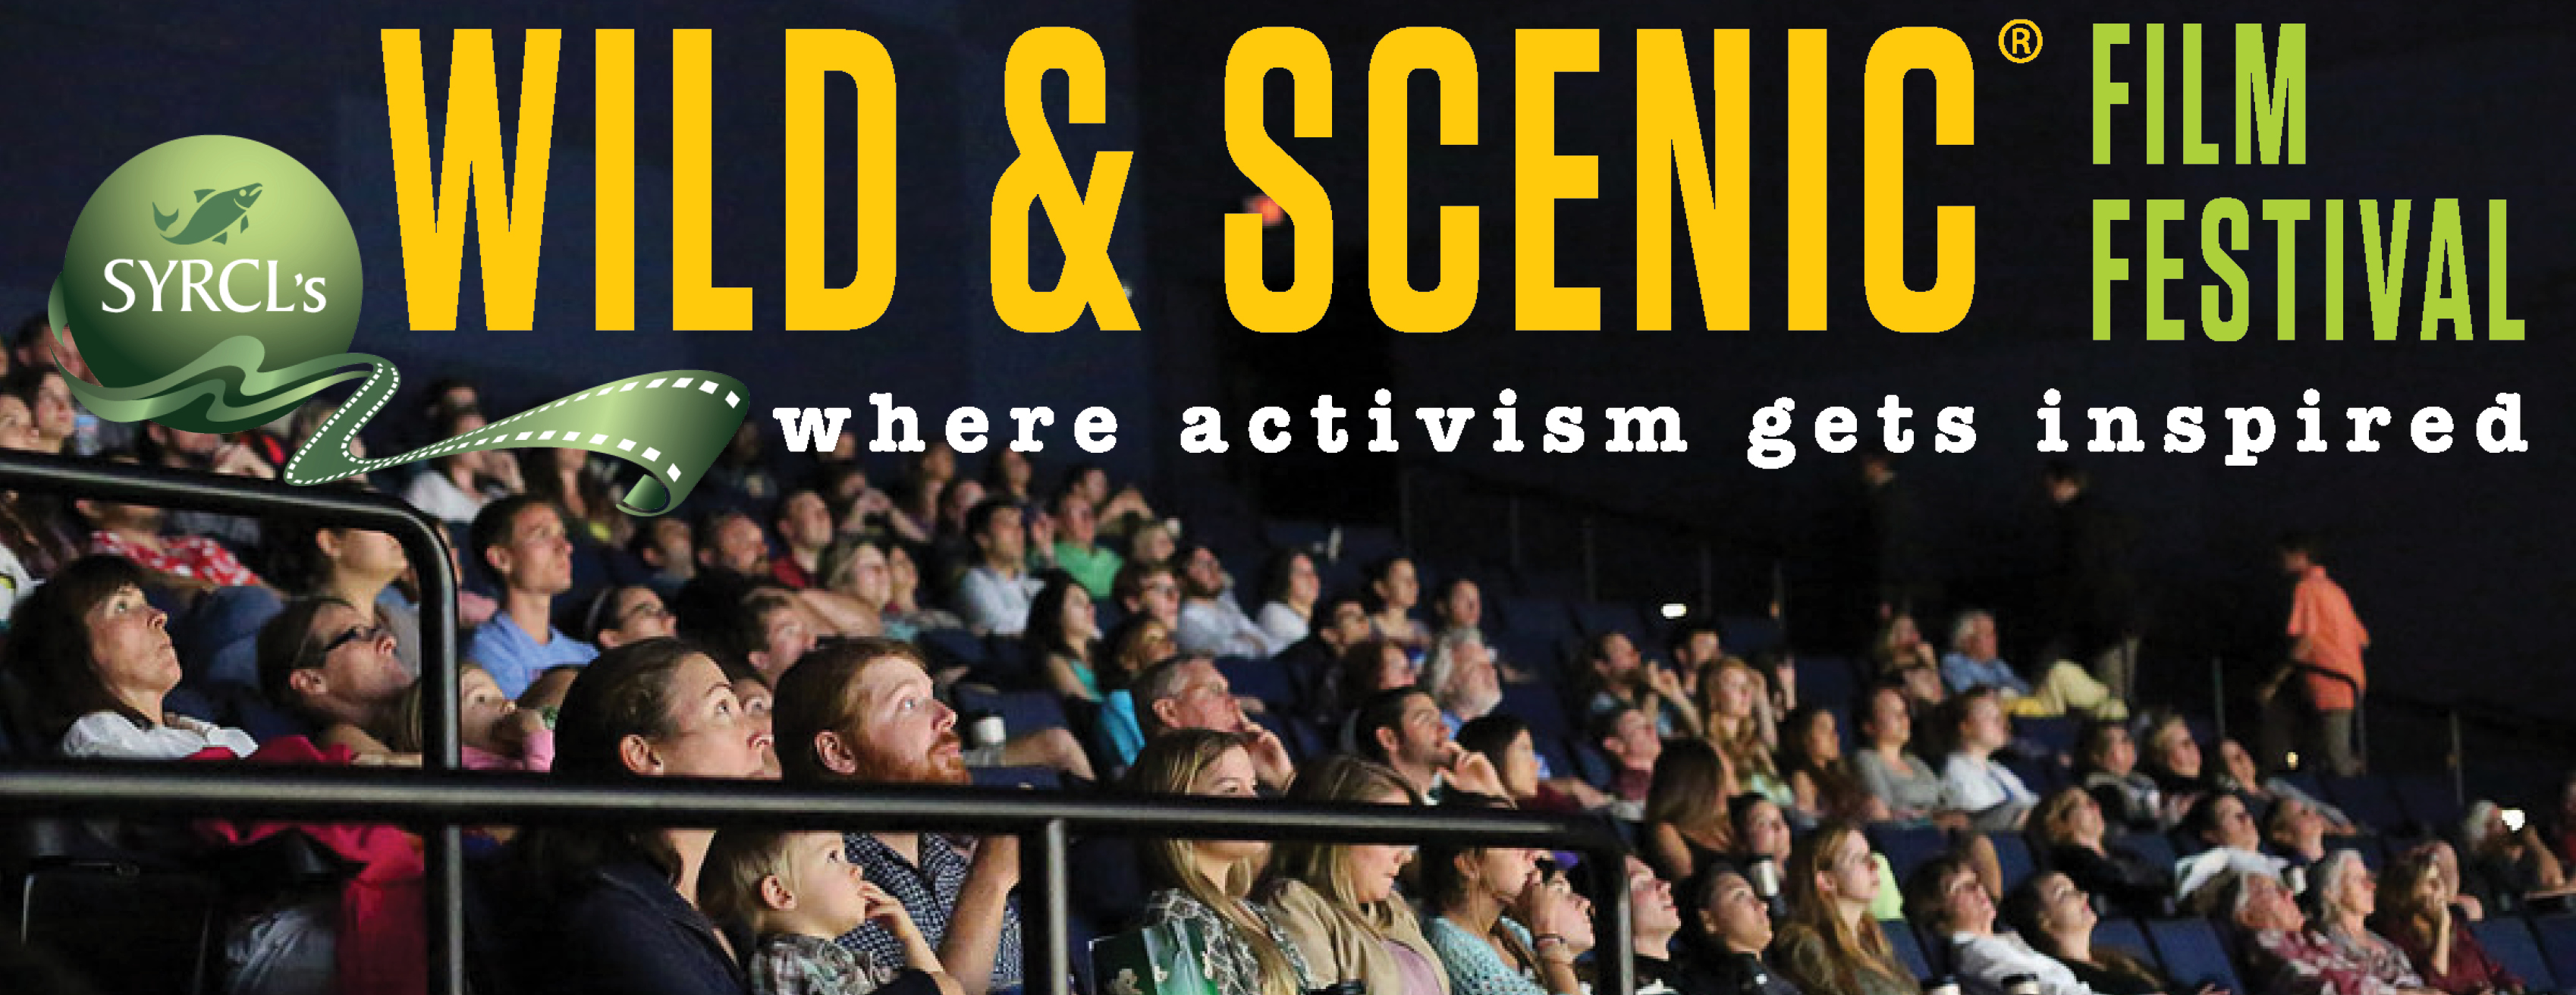 FB-Header-for-Tour-Hosts-Yellow-w-audience.jpg